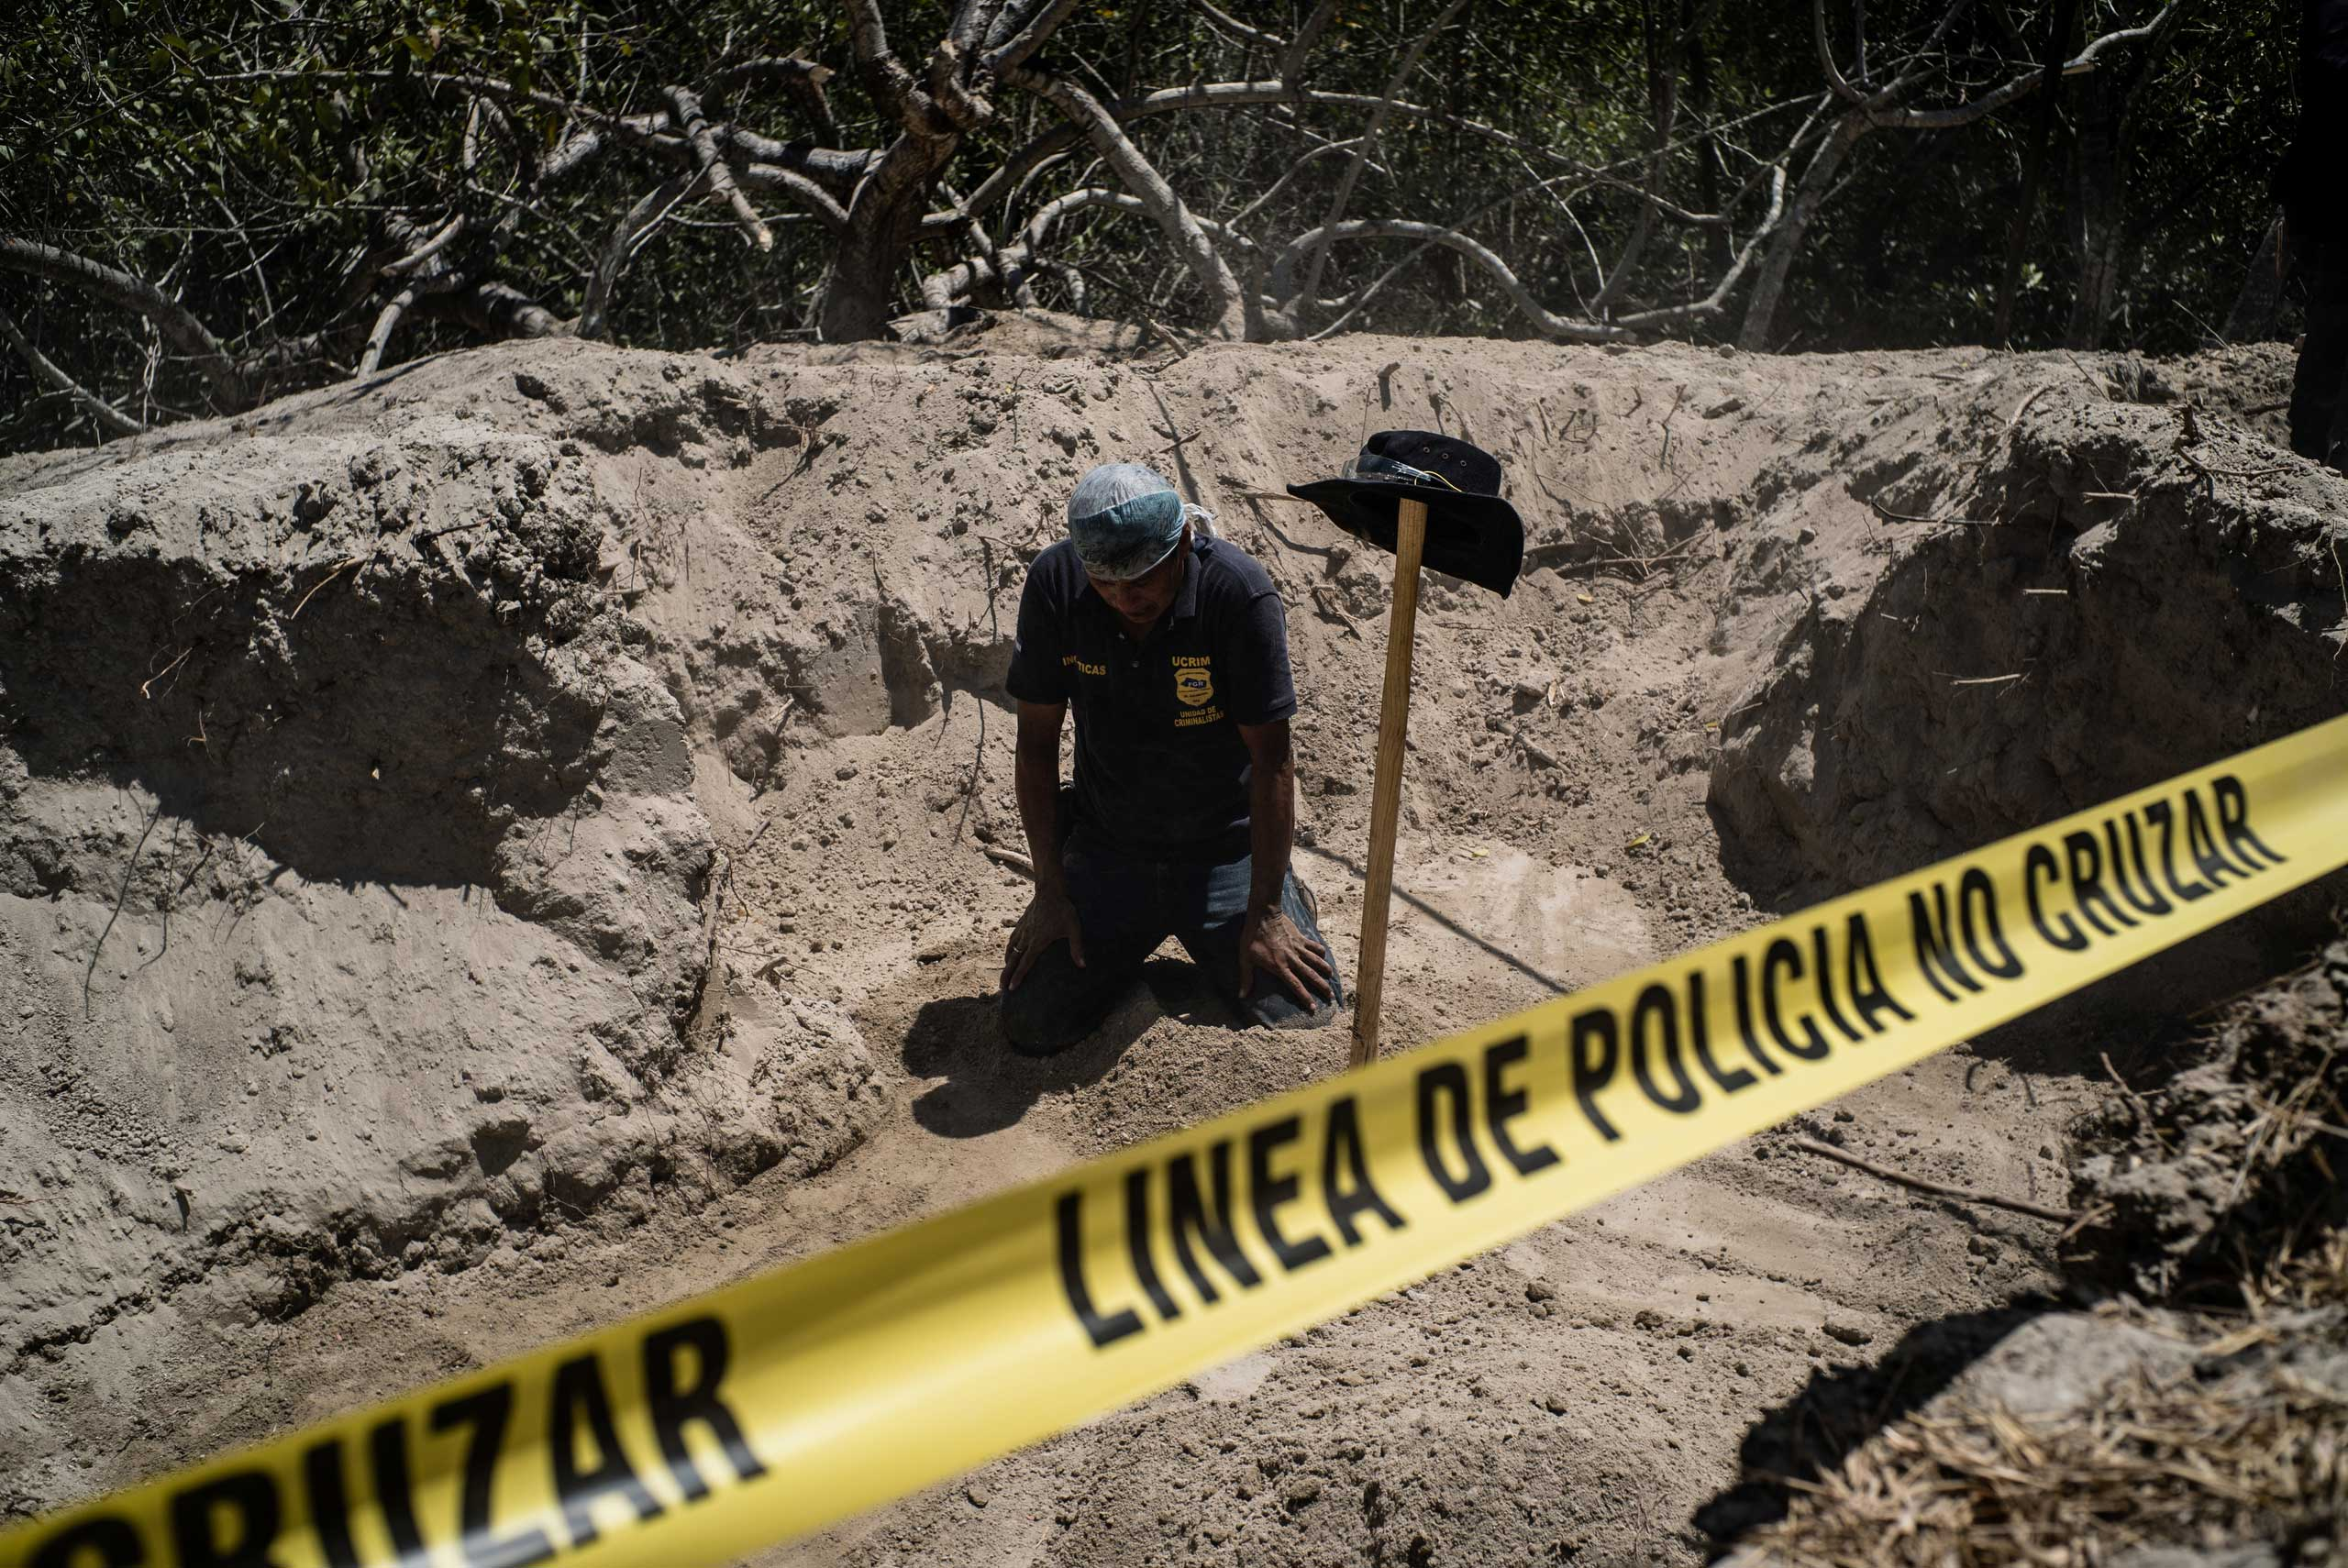 Forensic anthropologist Ticas Israel looks for clues as to where the bodies of three young victims are buried, in Herradura, March 18, 2015.